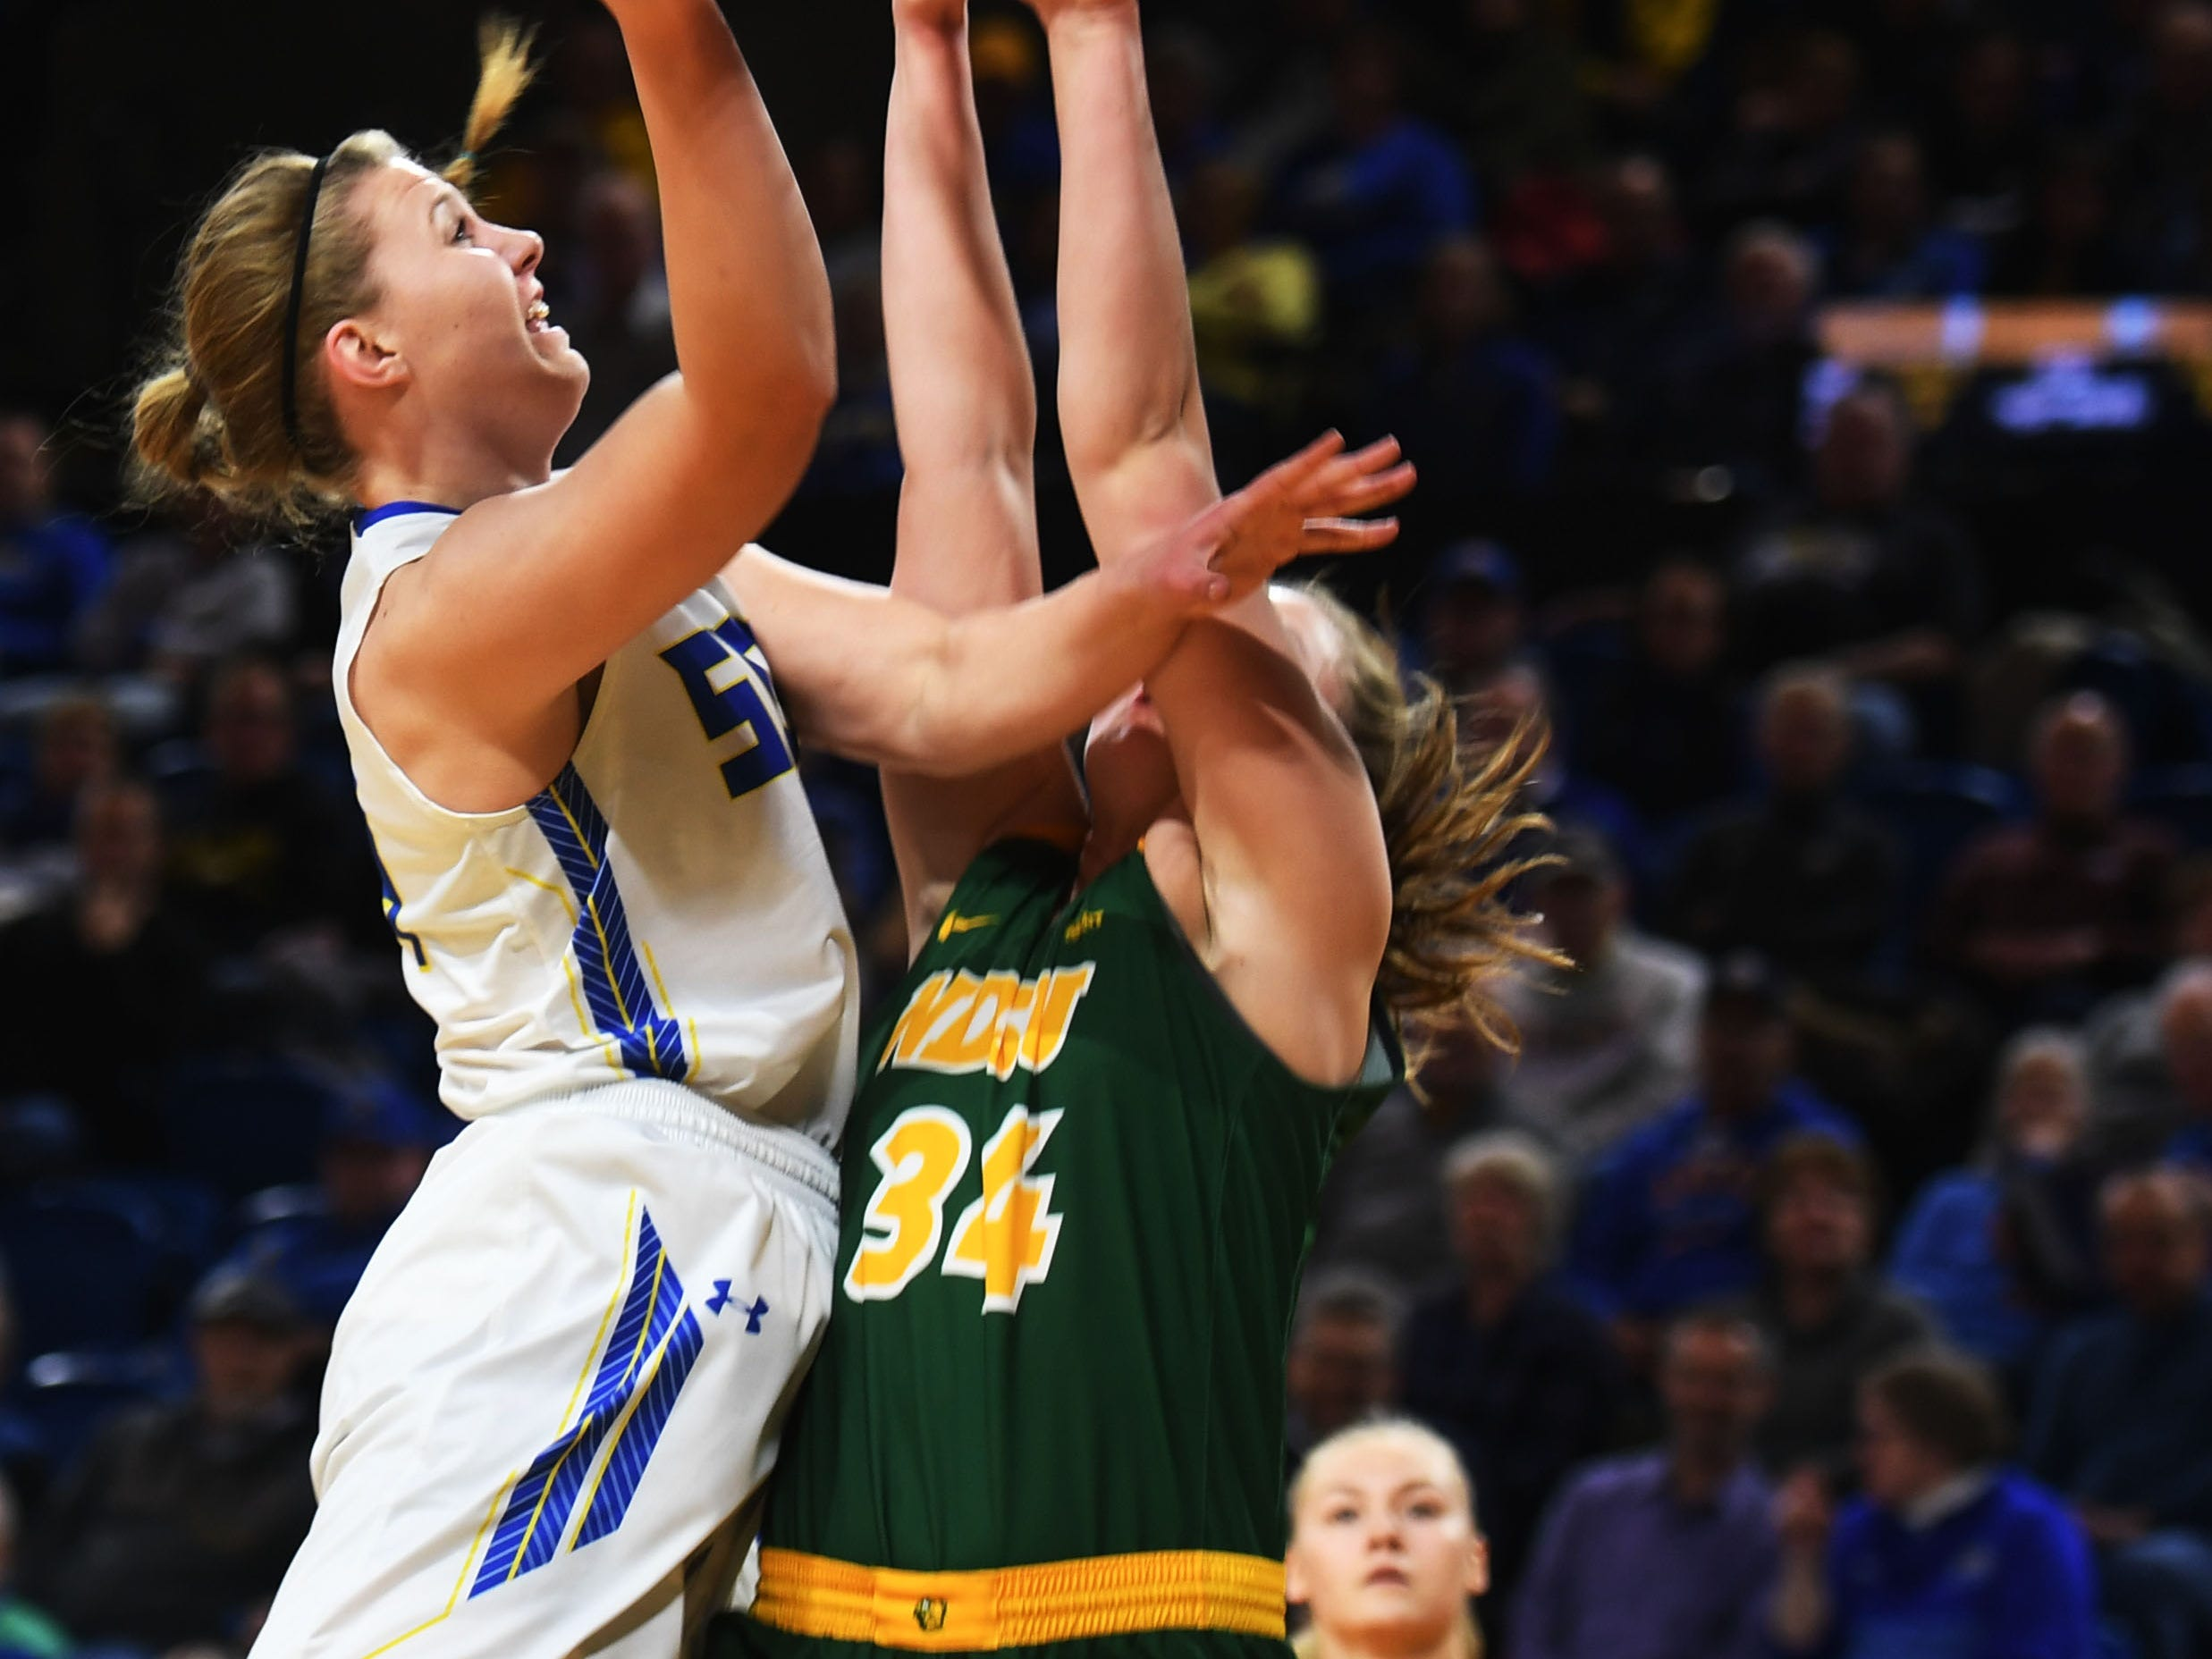 SDSU's Myah Selland attempts to score against NDSU Wednesday, Jan. 23, at Frost Arena in Brookings.